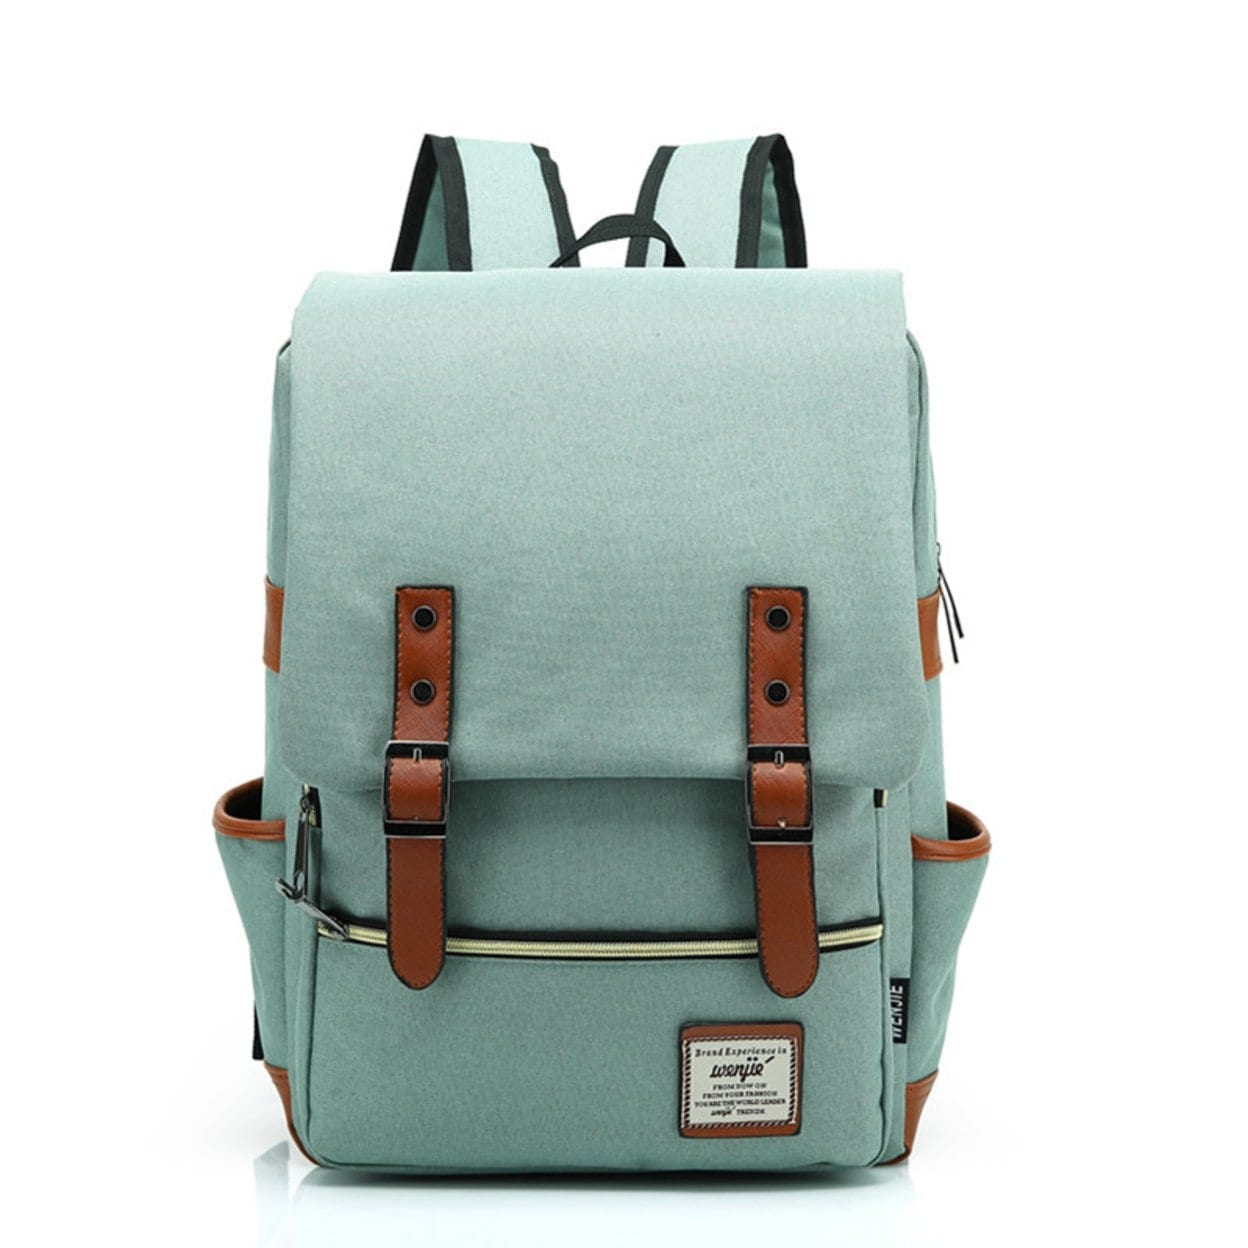 4917f645e2a63 Women Men Business Laptop Backpack Elegant Casual Daypacks Outdoor Sports  Rucksack School Shoulder Bag Travelling Backpack